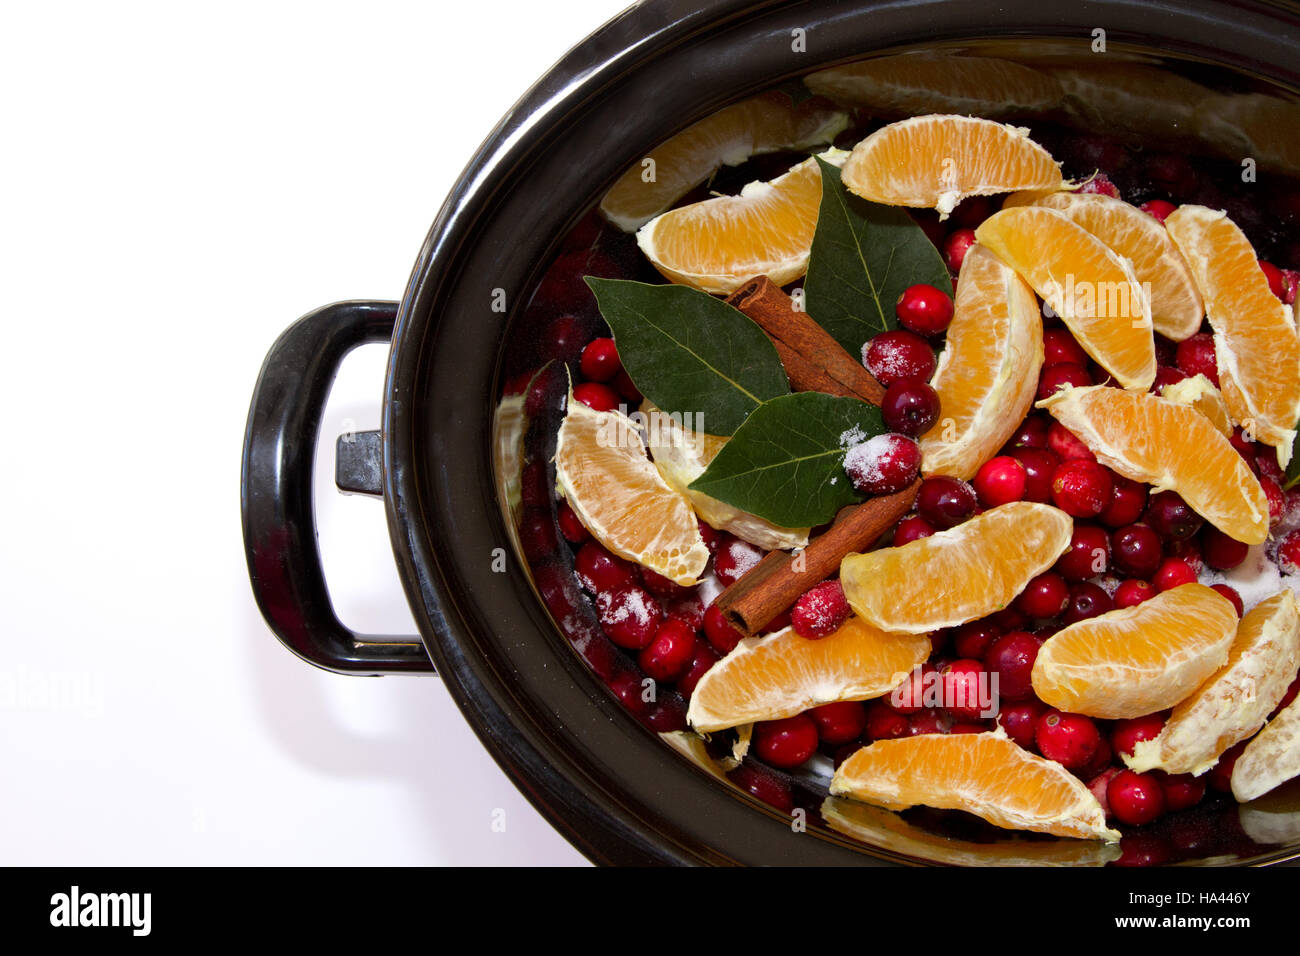 Homemade cranberry sauce ingredients of cinnamon, oranges, cranberries, bay leaf simmering in a crock pot isolated - Stock Image